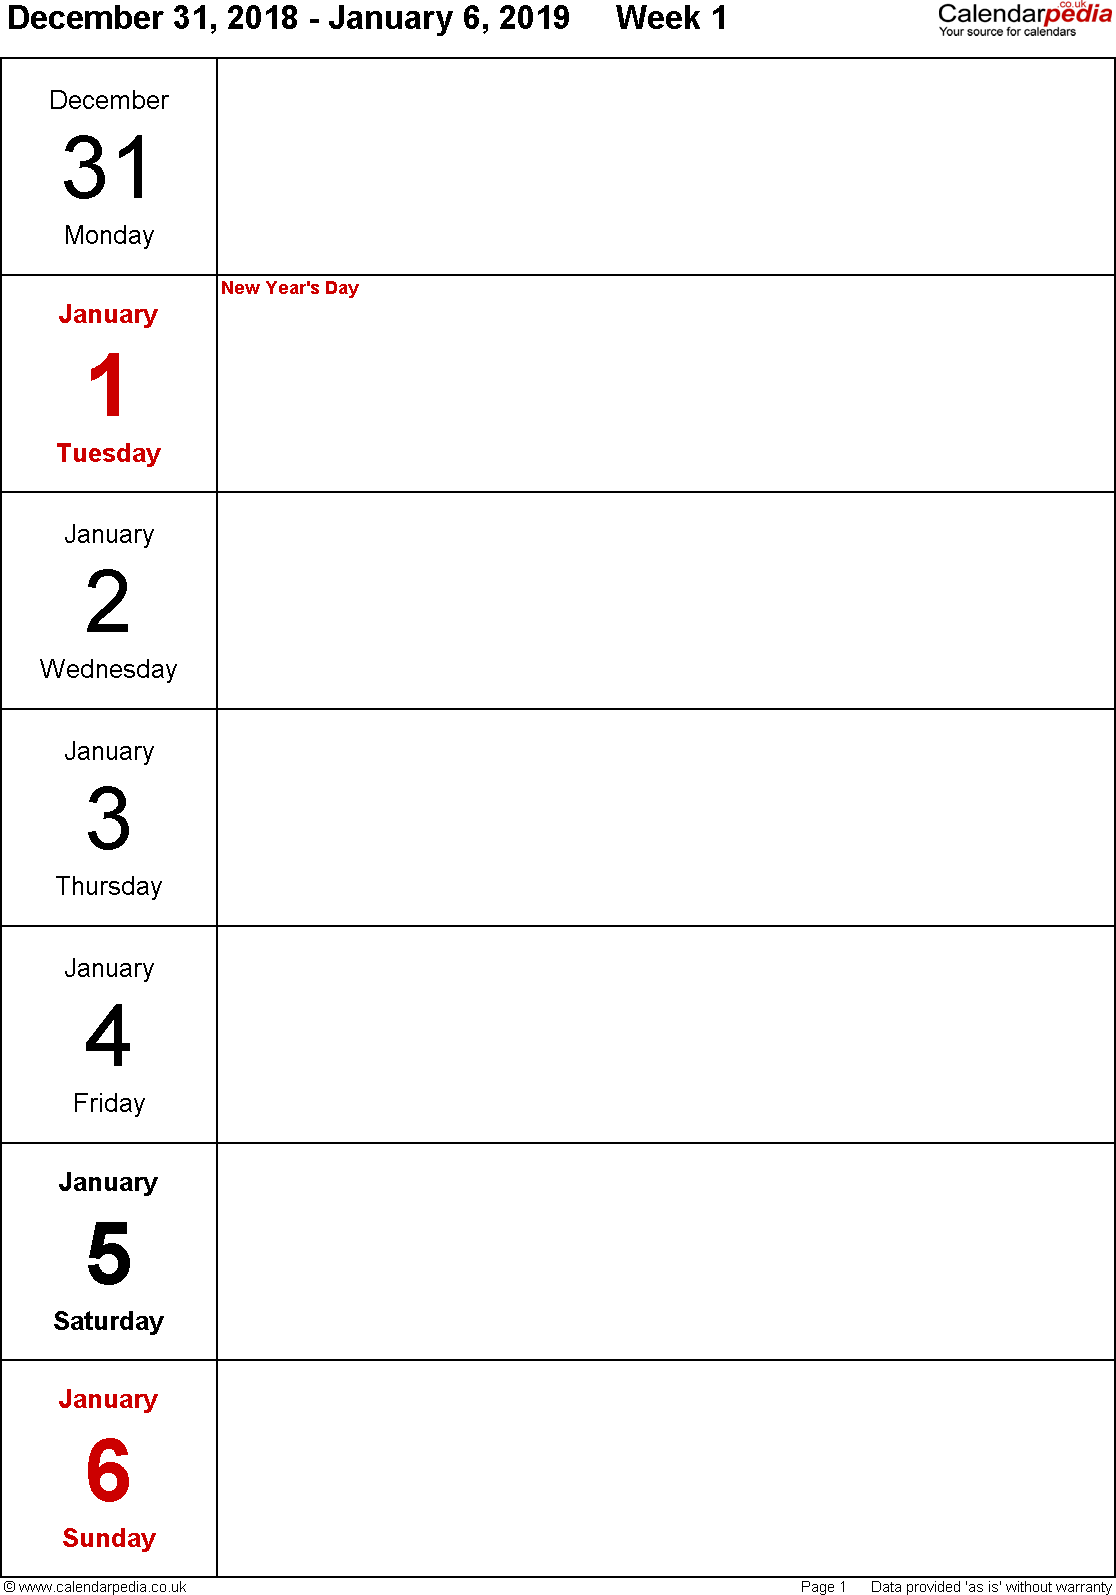 Excel template 10: Weekly calendar 2019, portrait orientation, days vertically, 53 pages (1 calendar week on 1 page)